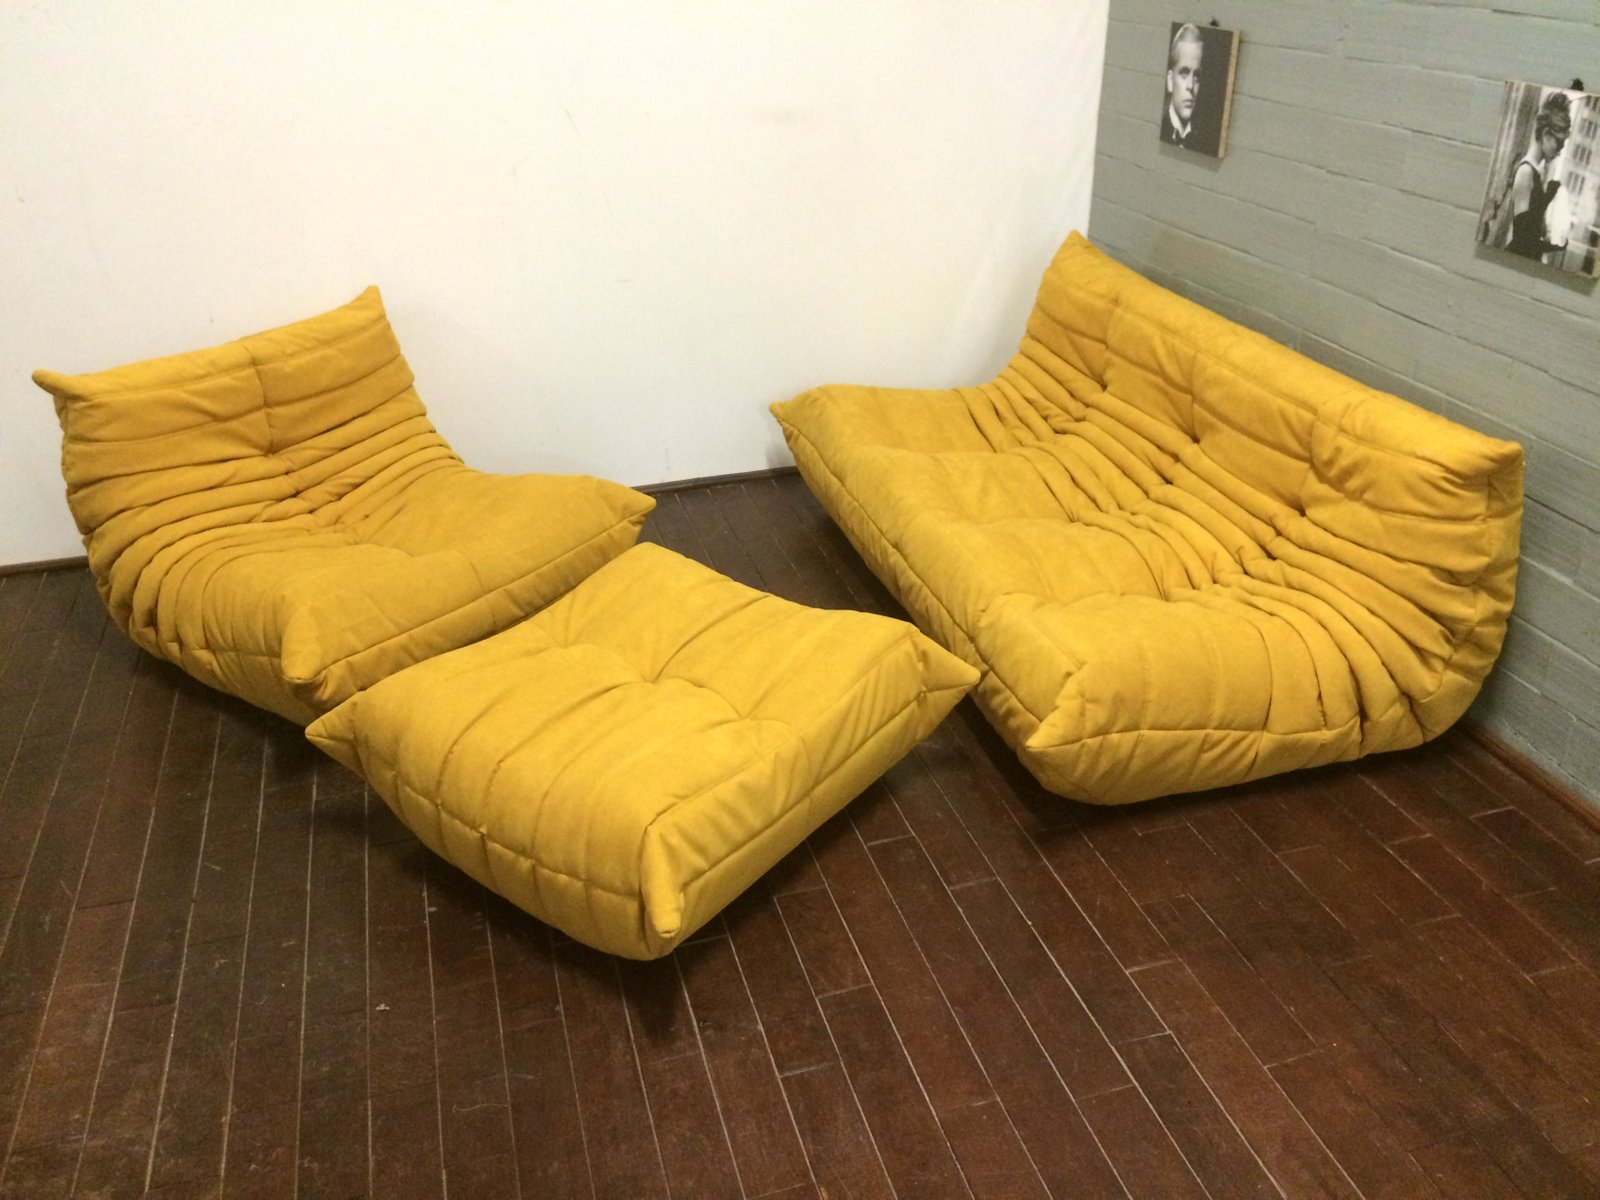 yellow alcantara togo sofa set by michel ducaroy for ligne roset 1970s set of 3 for sale at pamono. Black Bedroom Furniture Sets. Home Design Ideas